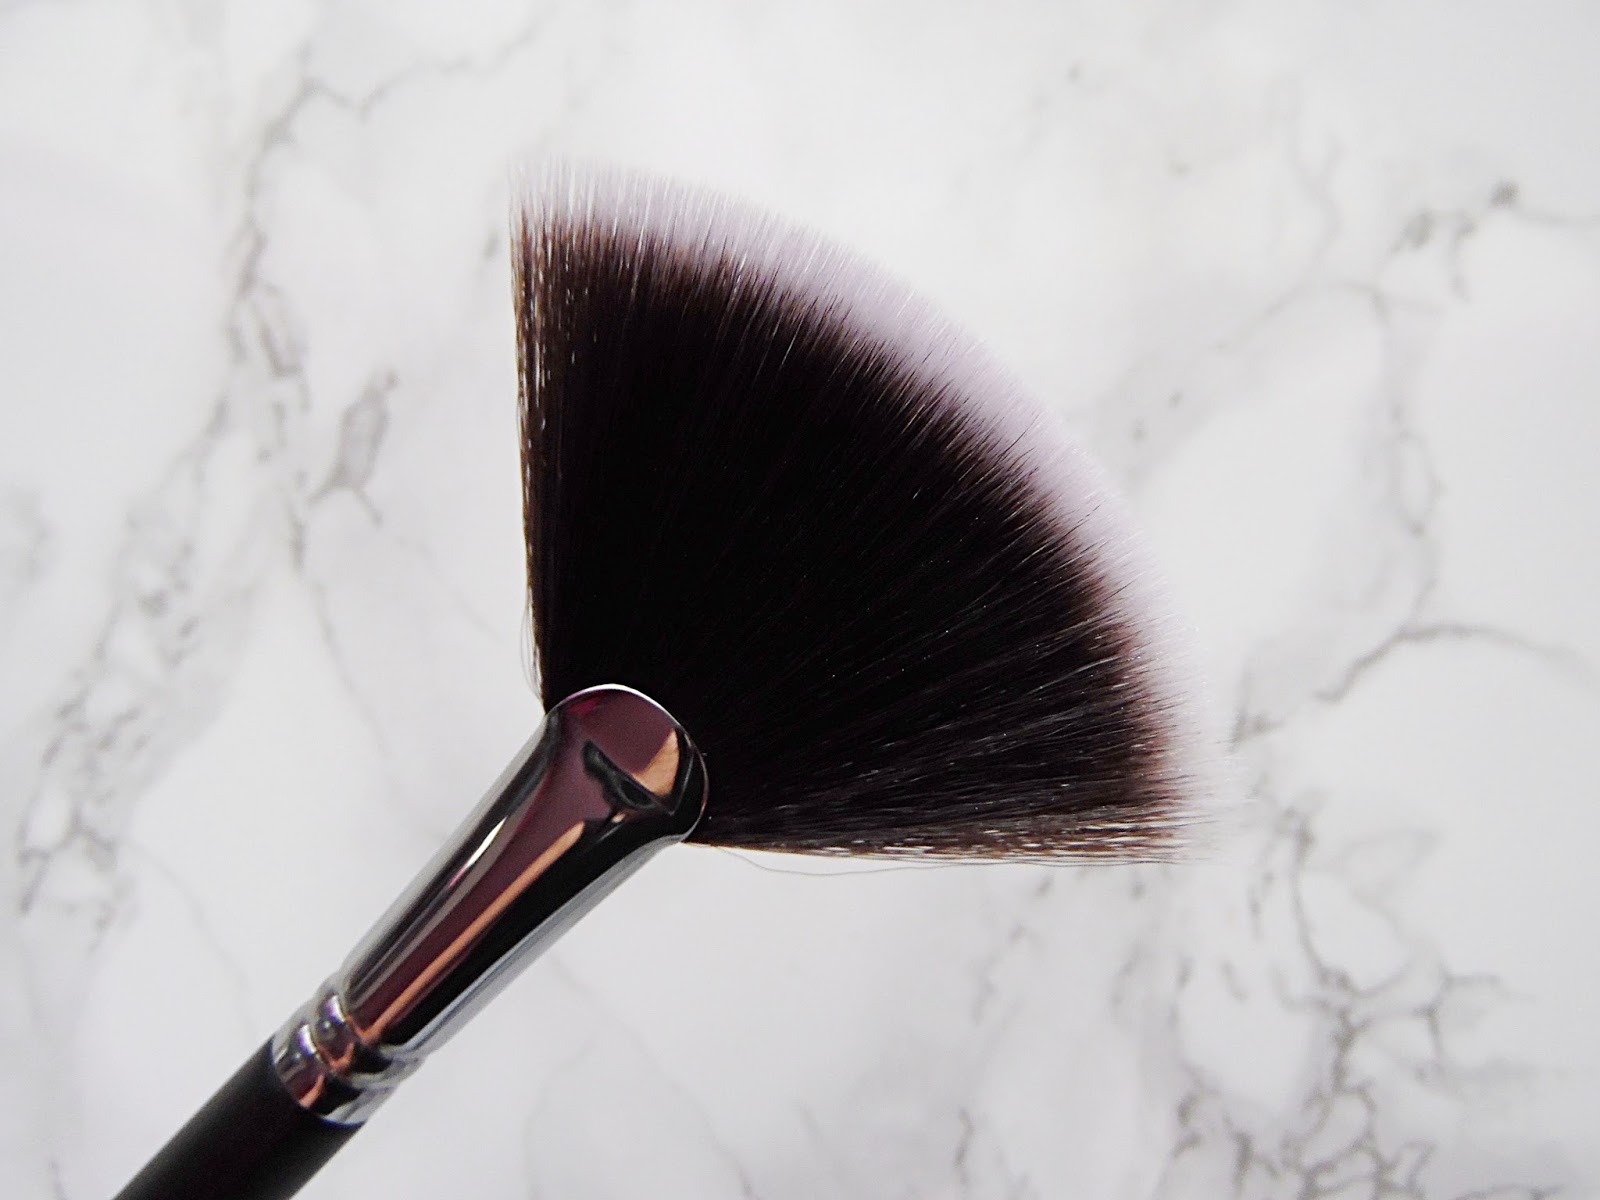 Nanshy Fan Brush Review